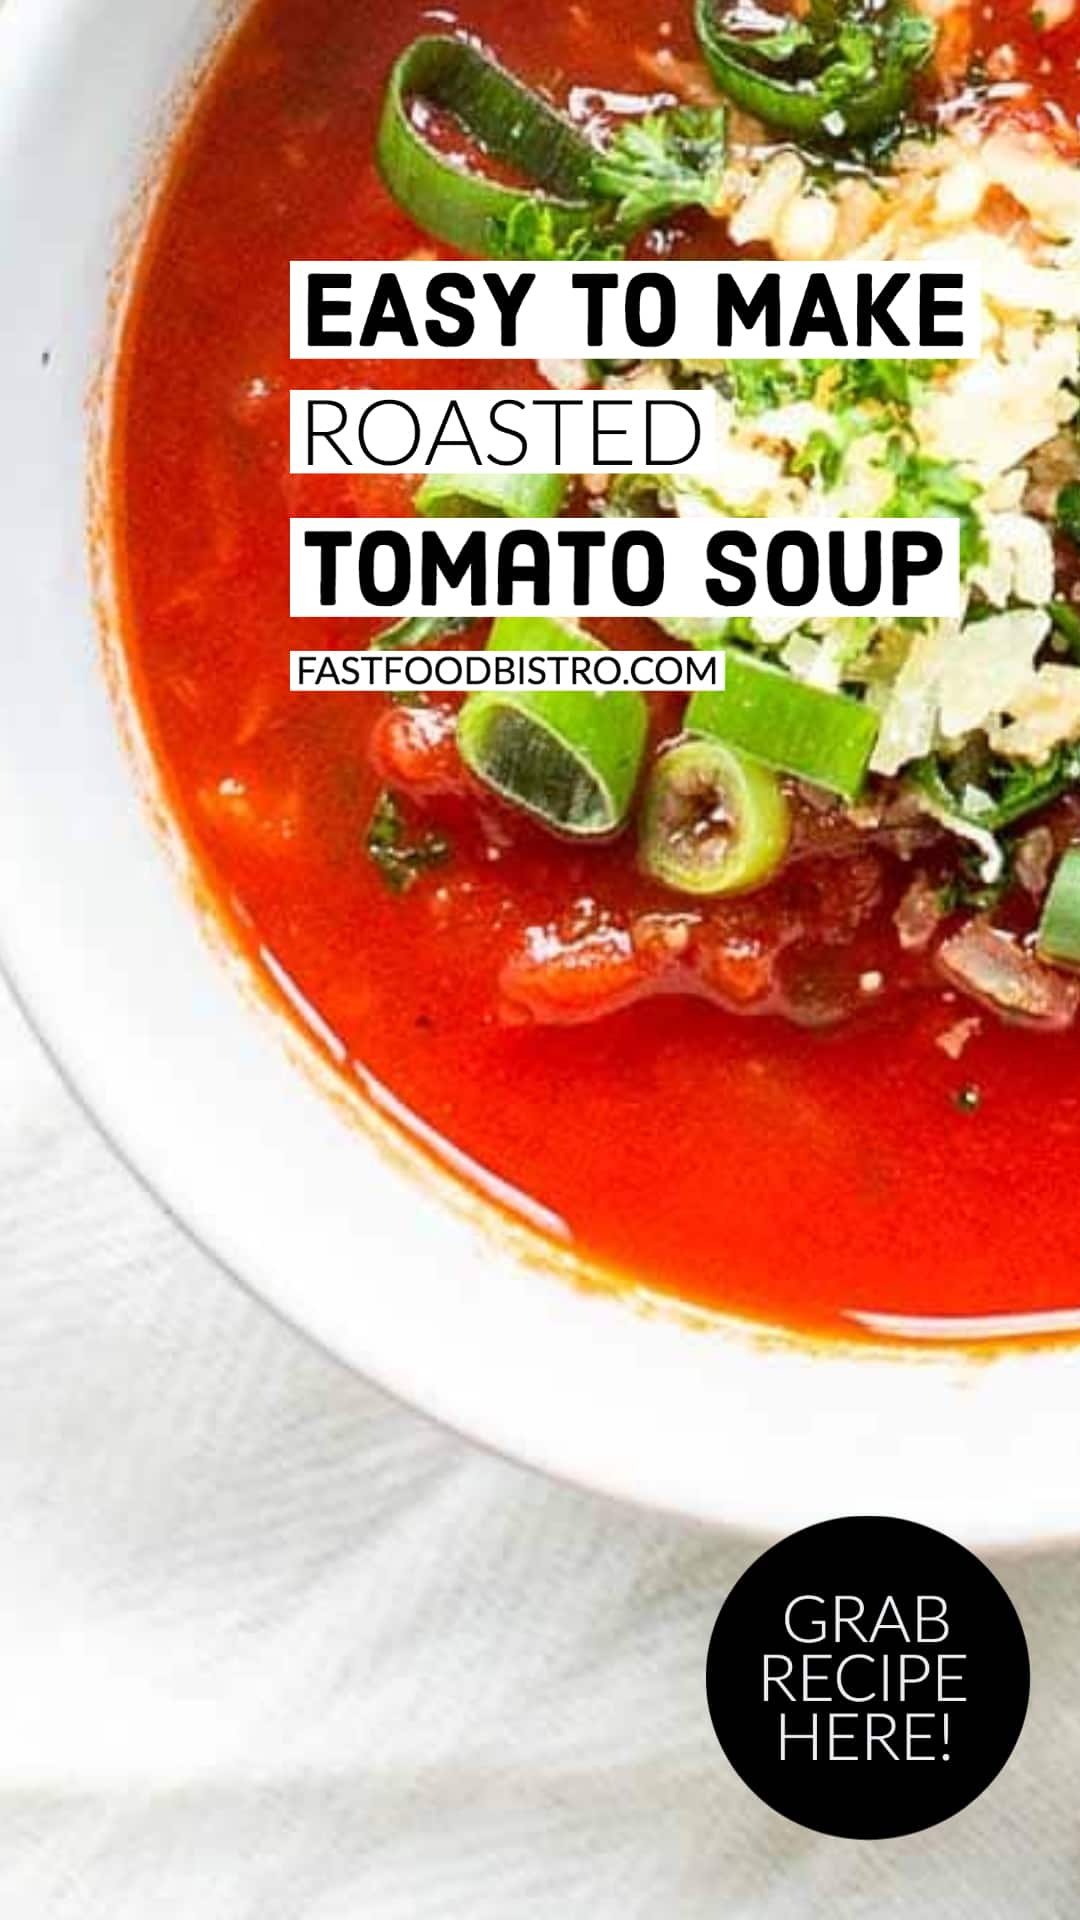 Homemade roasted tomato soup that is done in less than 30 minutes. Serve as a full meal, starter or lunch. This rustic tomato soup is easy to make and super tasty. Vist fastfoodbistro.com for the full recipe #fastfoodbistro #roastedtomatosoup #tomatosoup #homemadesoup